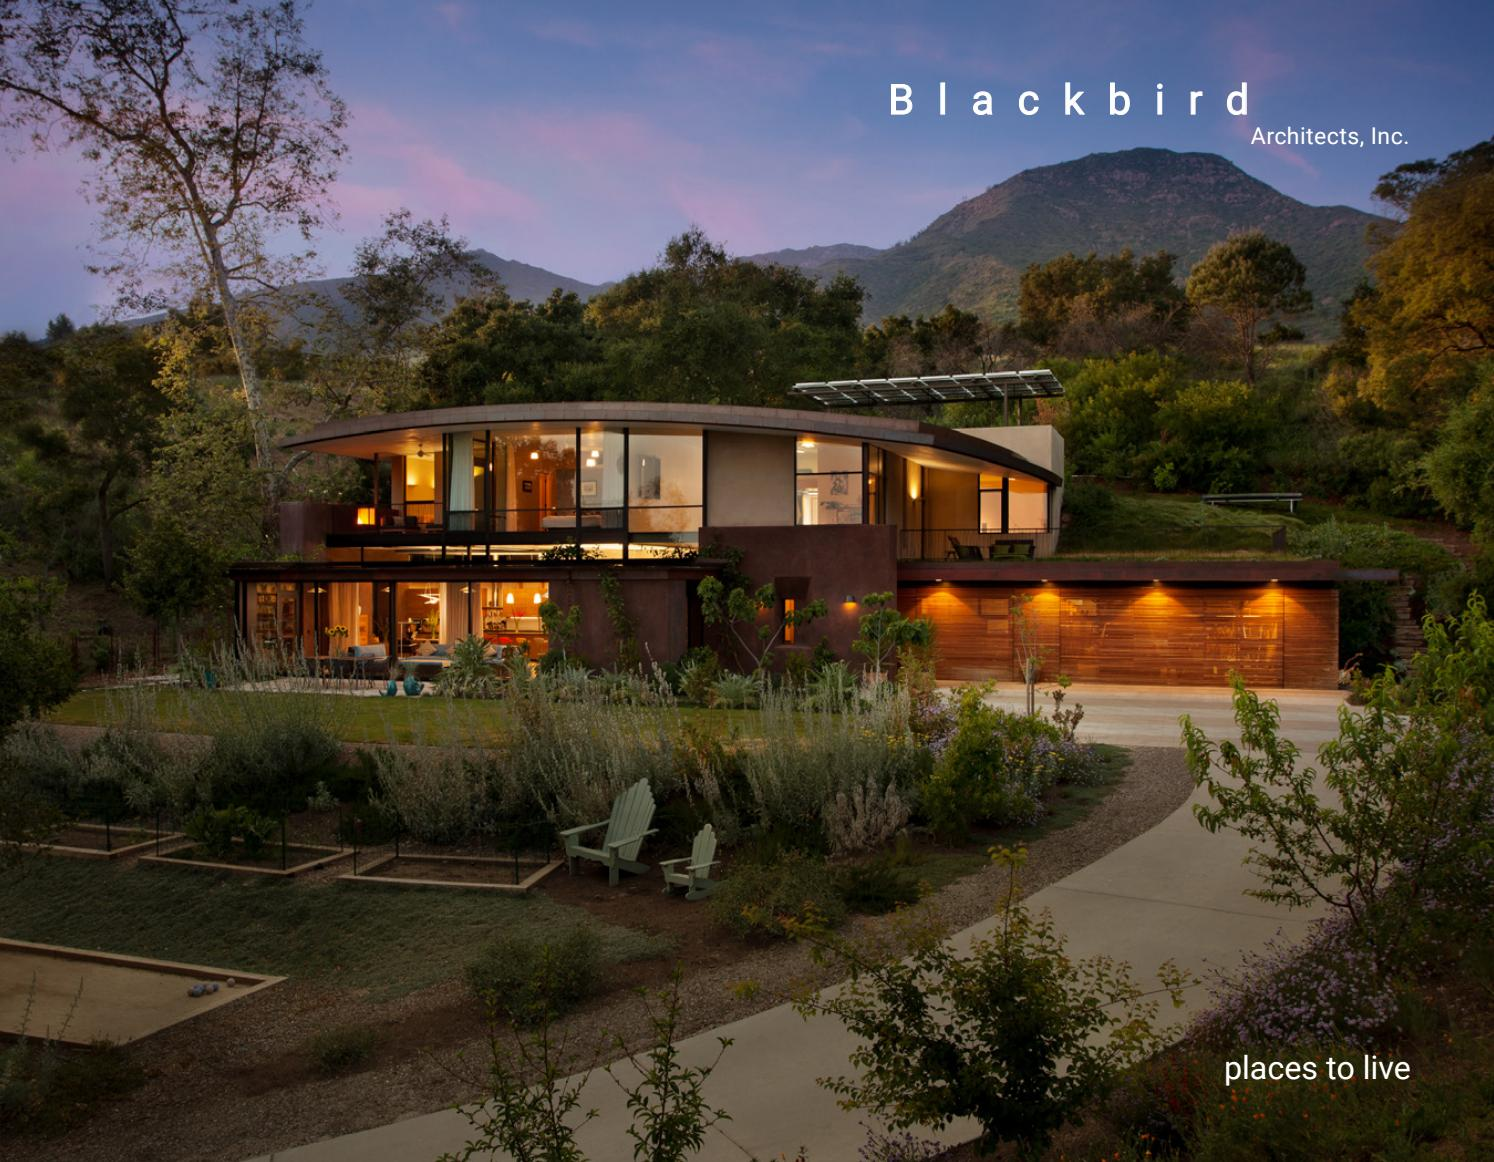 Blackbird Architectsu0027 Residential Brochure By Blackbird Architects   Issuu